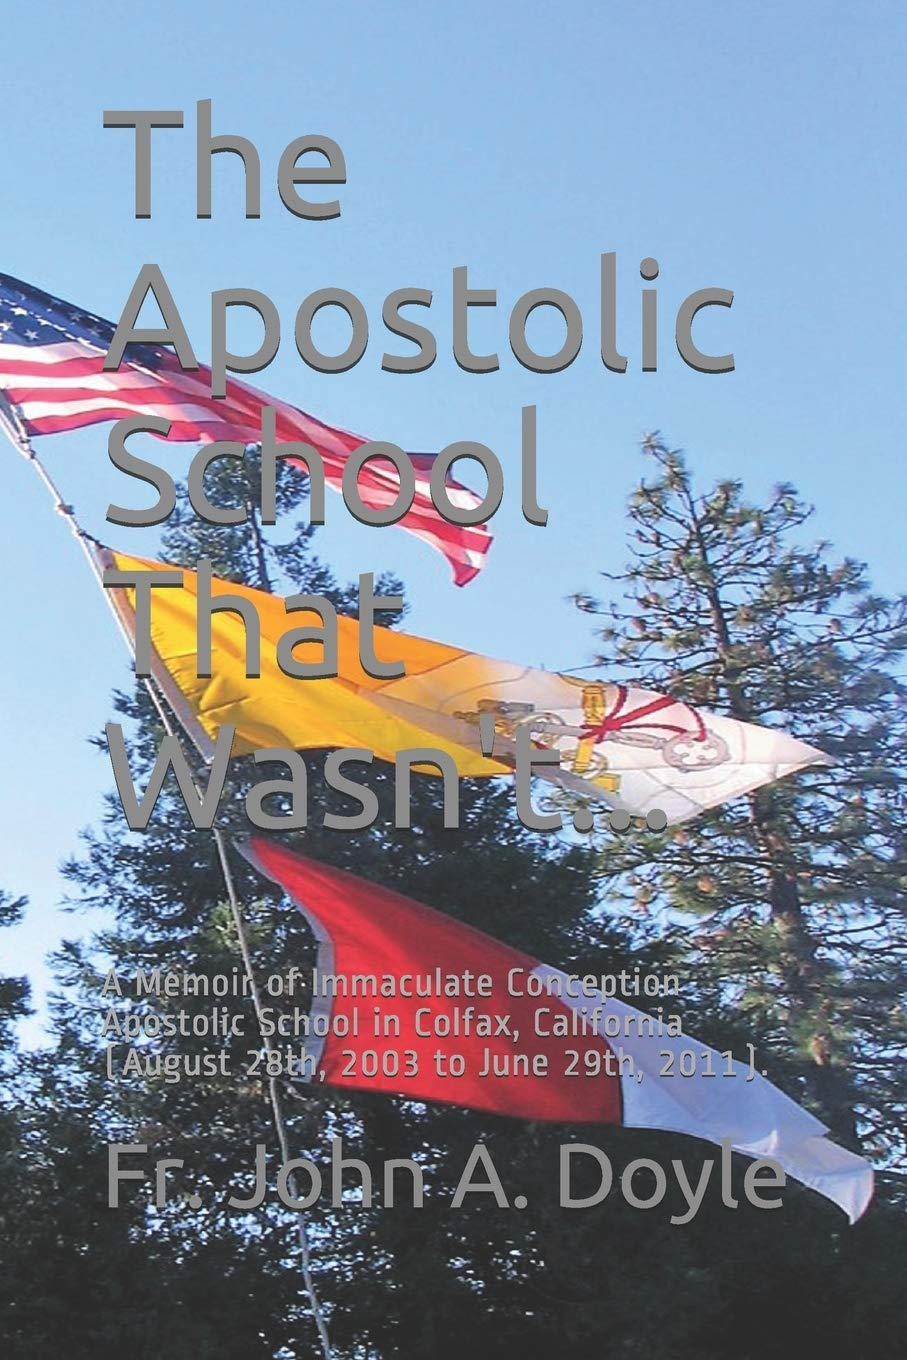 The Apostolic School That Wasn't...: A Memoir of Immaculate Conception Apostolic School in Colfax, California (August 28th, 2003 to June 29th, 2011).